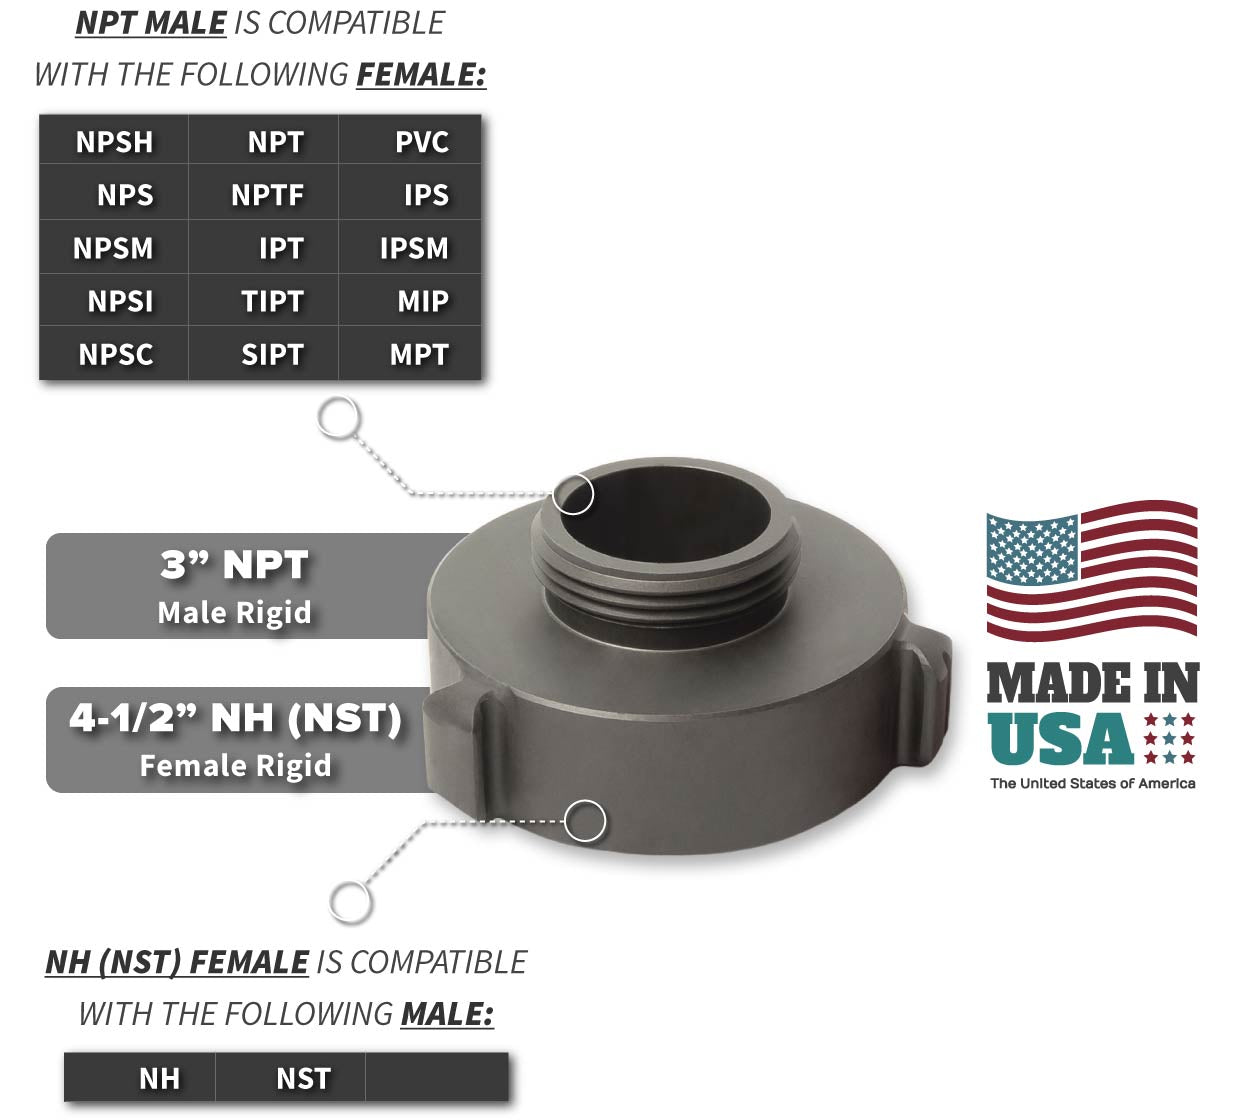 4.5 Inch NH-NST Female x 3 Inch NPT Male Compatibility Thread Chart